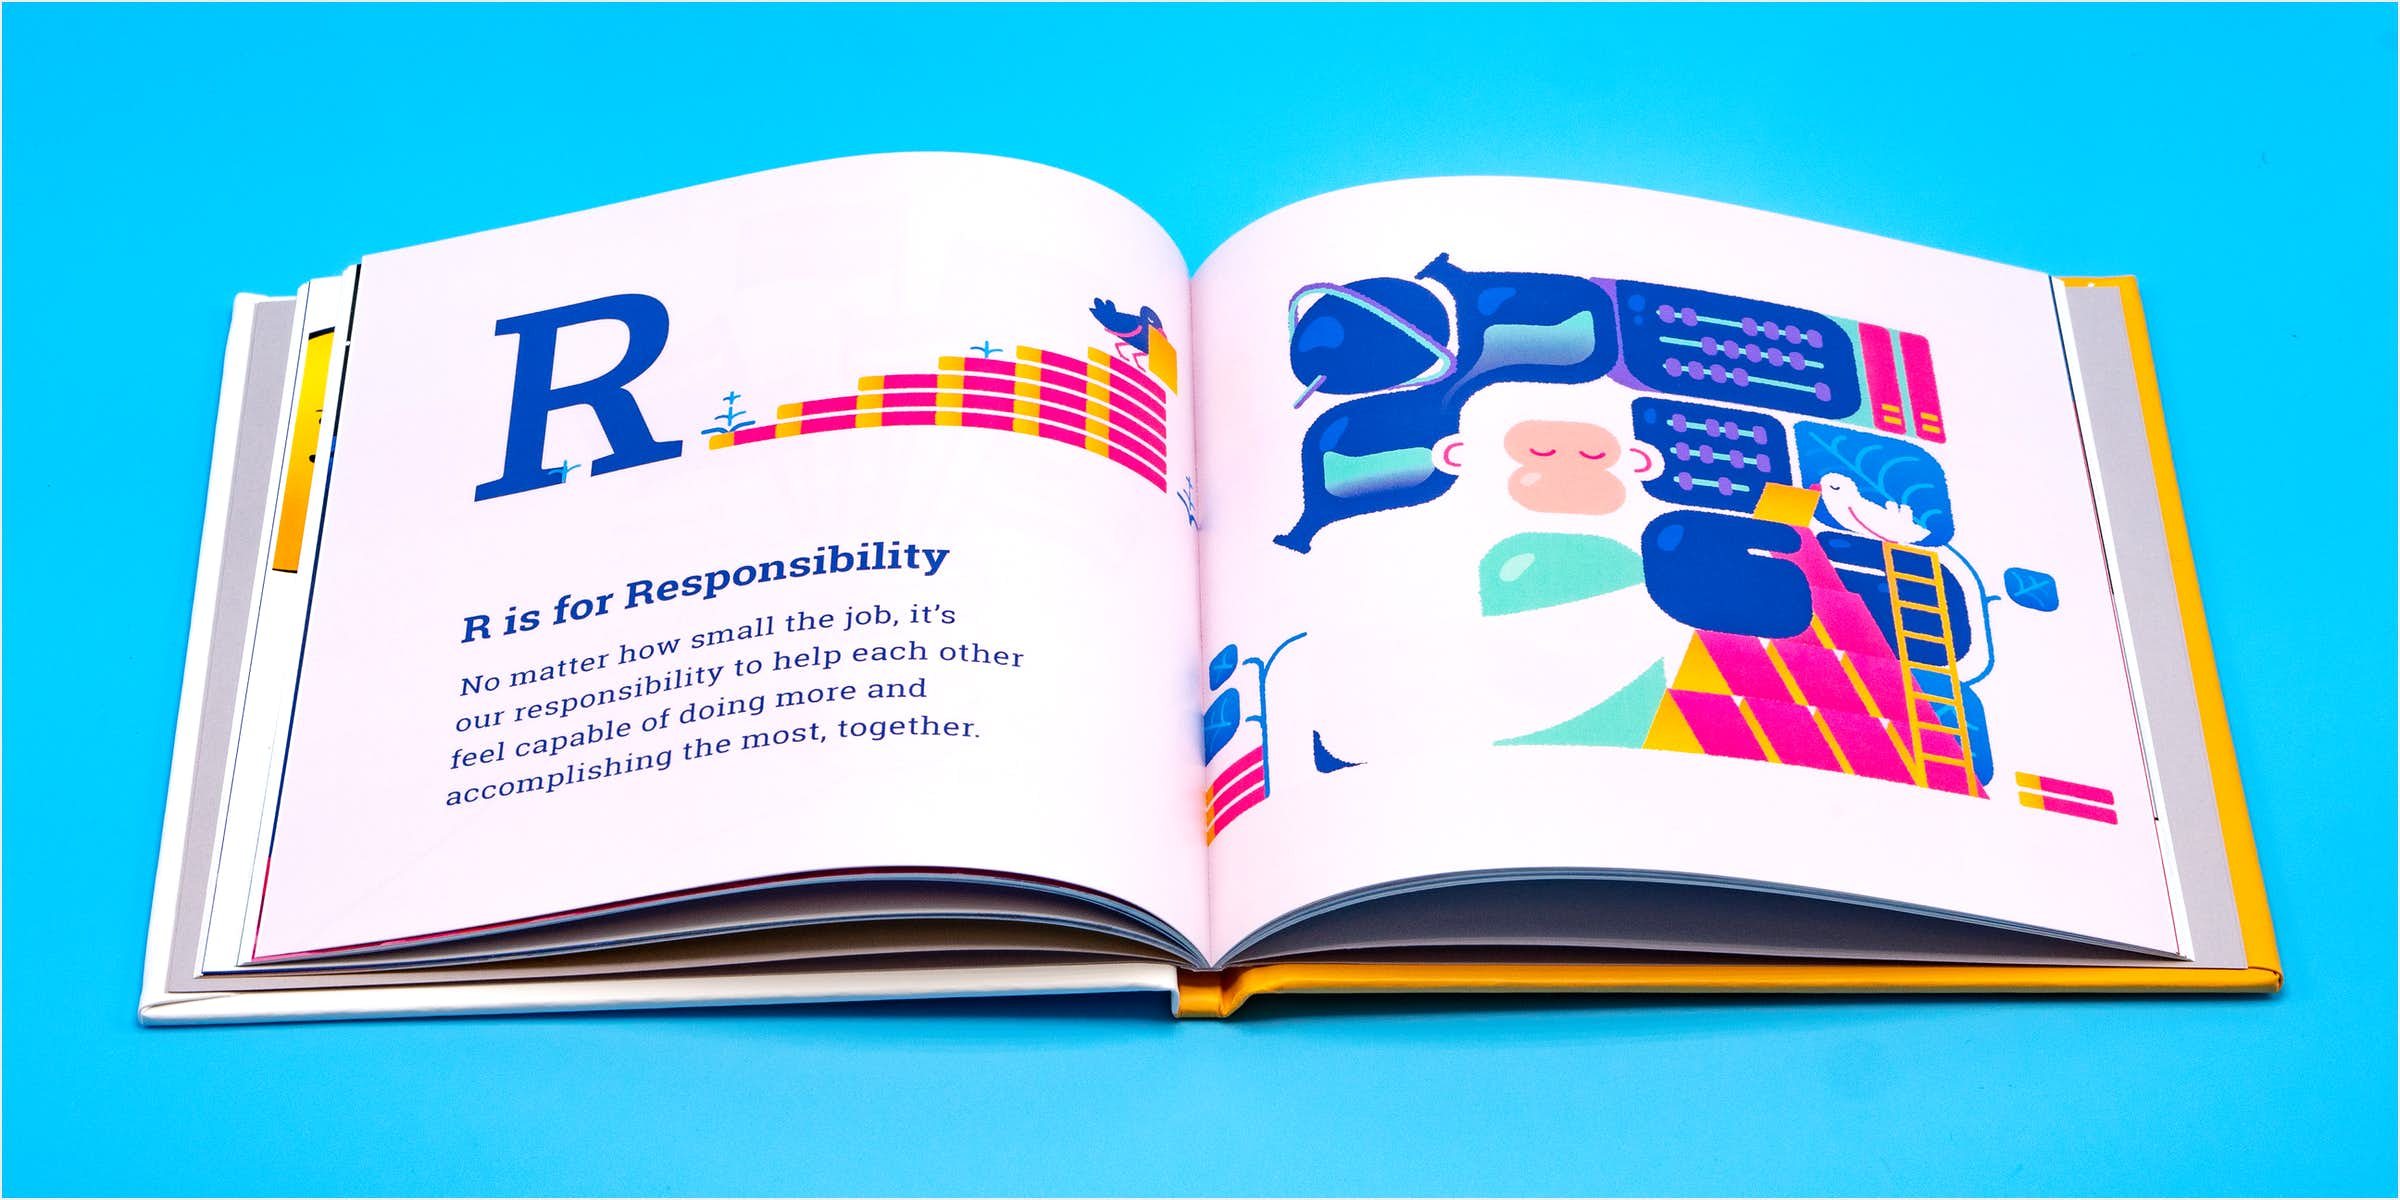 R is for Responsibility